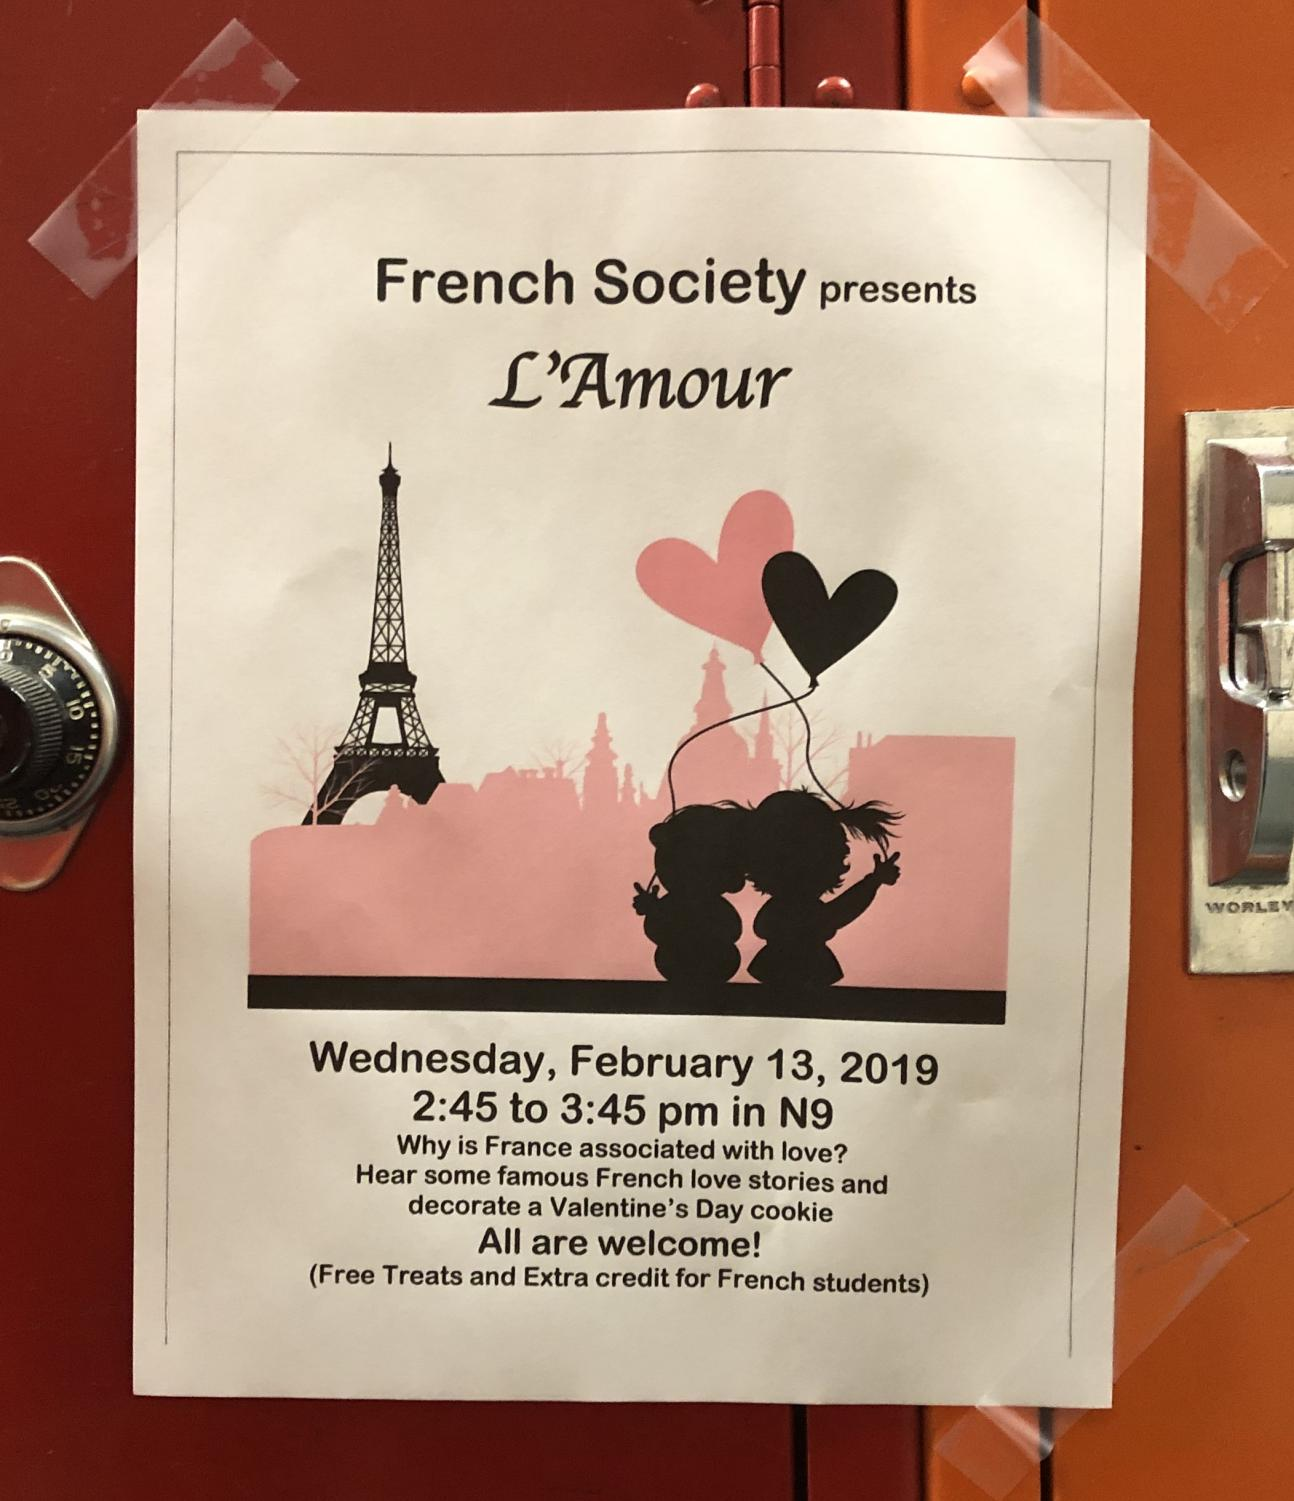 This thematic French Society flyer holds all the details for the meeting on Wednesday